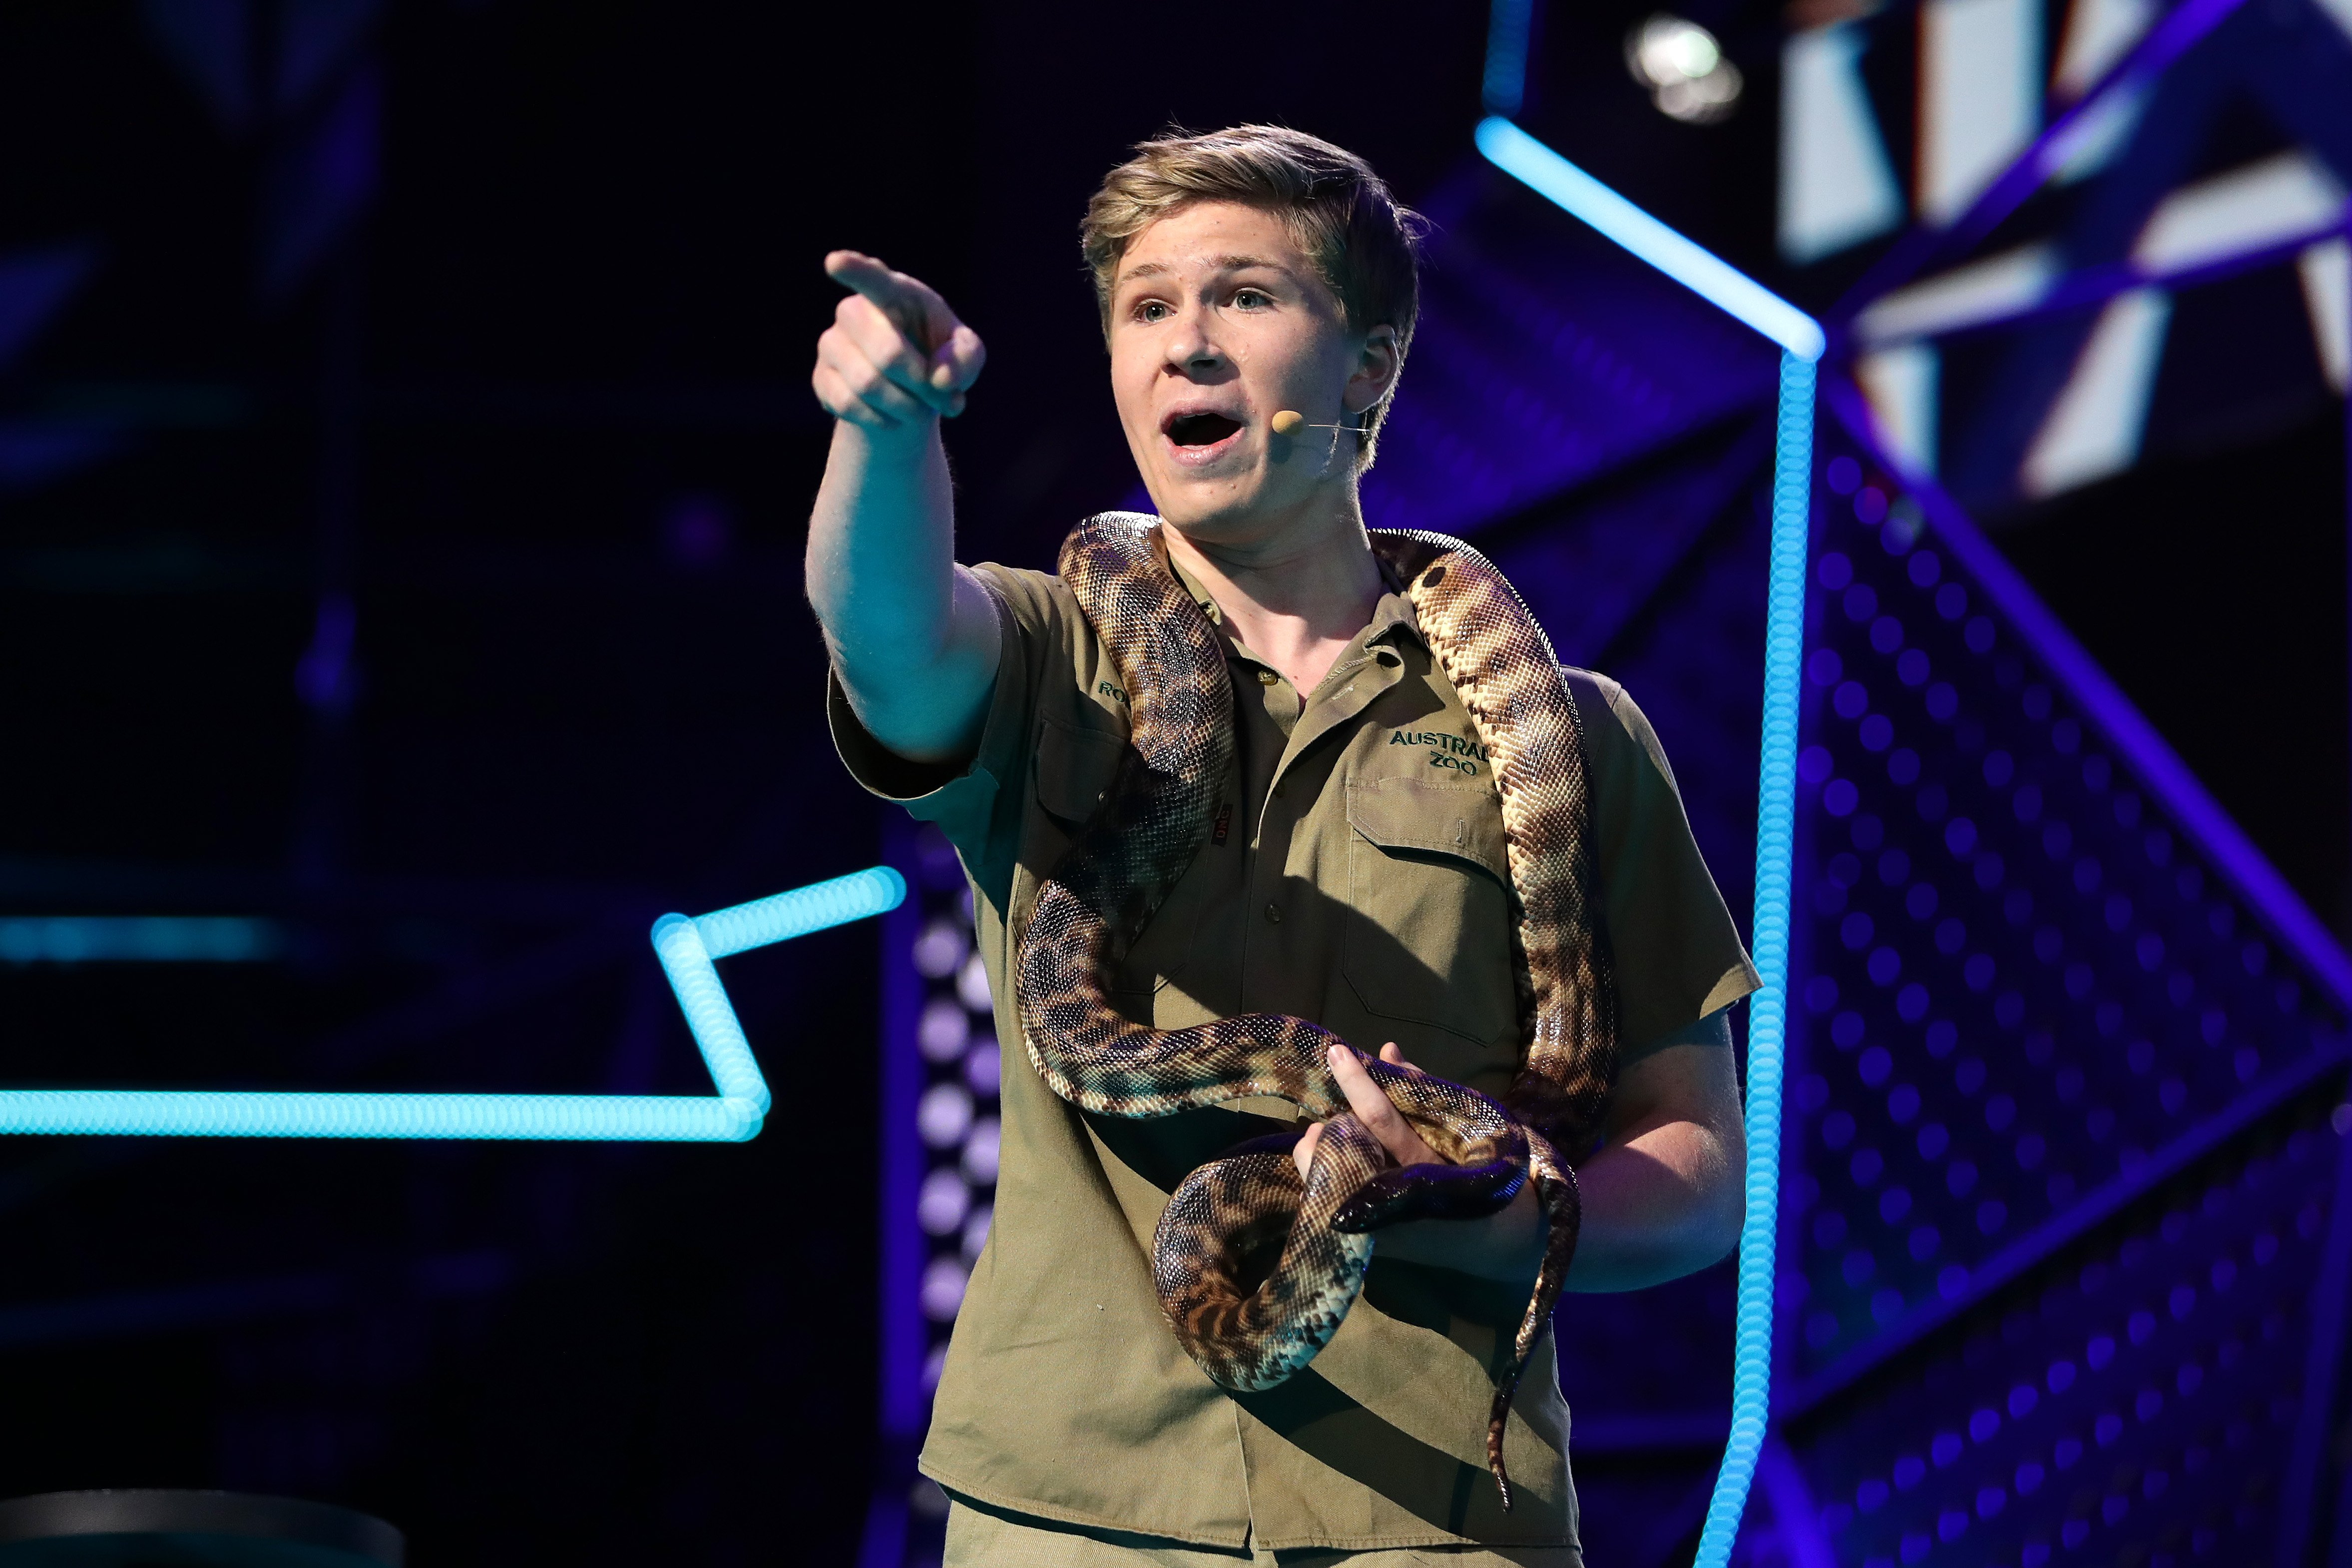 Robert Irwin during the 33rd Annual ARIA Awards 2019 at The Star on November 27, 2019 | Photo: Getty Images